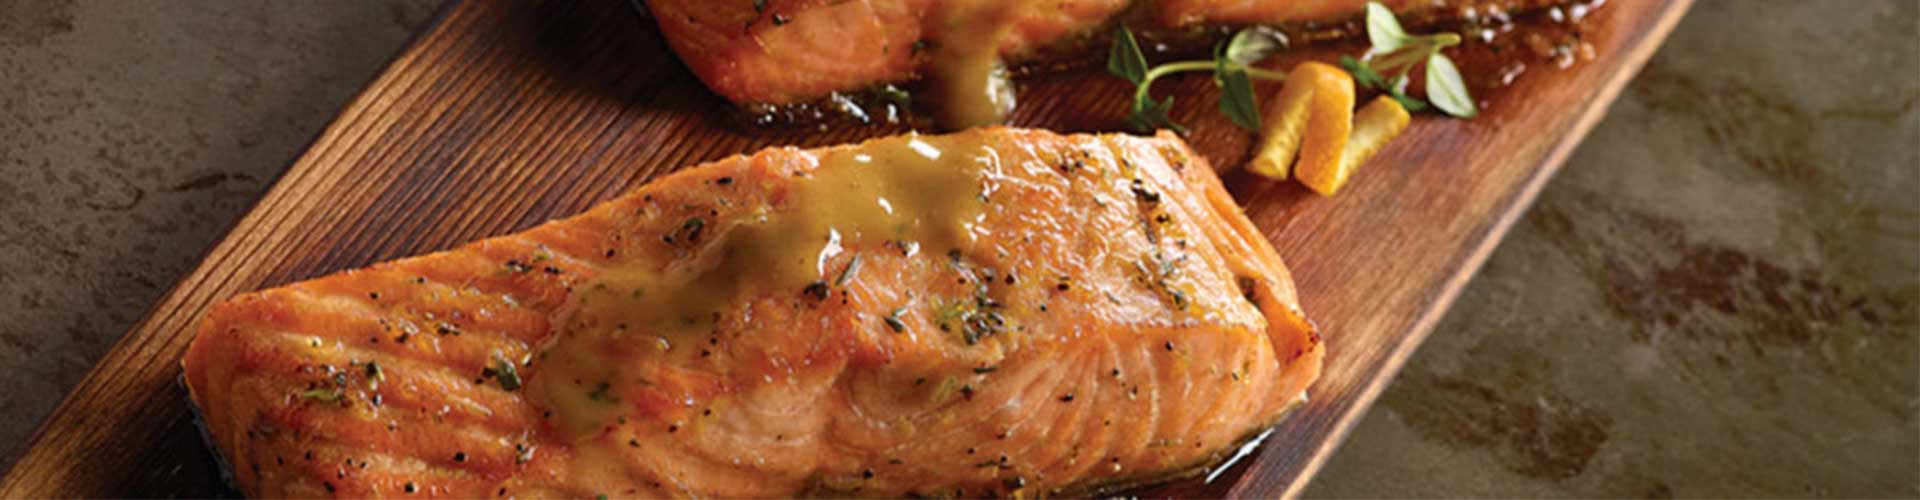 Cedar Planked Salmon with Honey Glaze